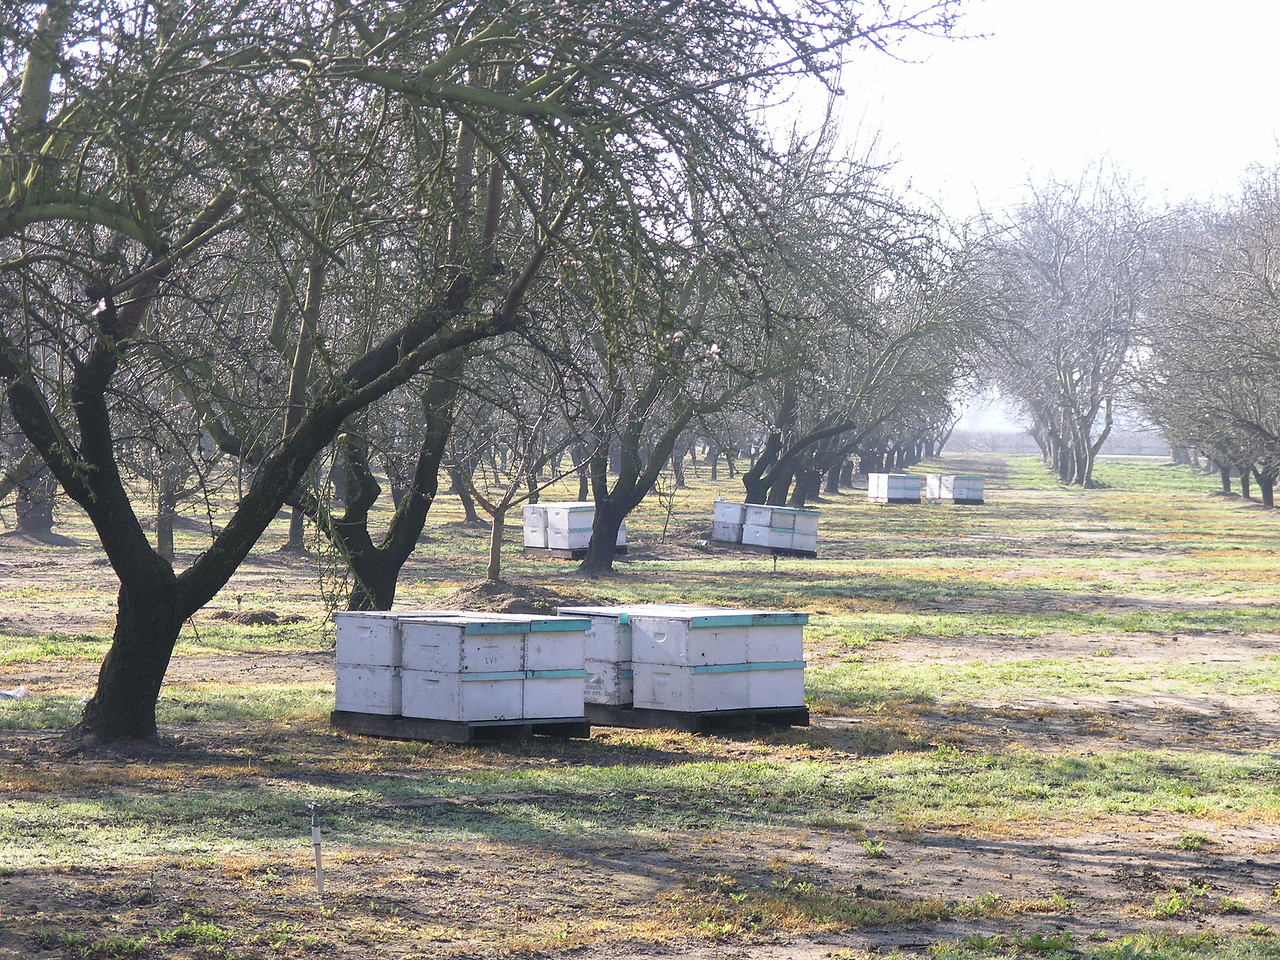 earlier I showed some bee keepers. This shows bee hives placed in an almond orchard.